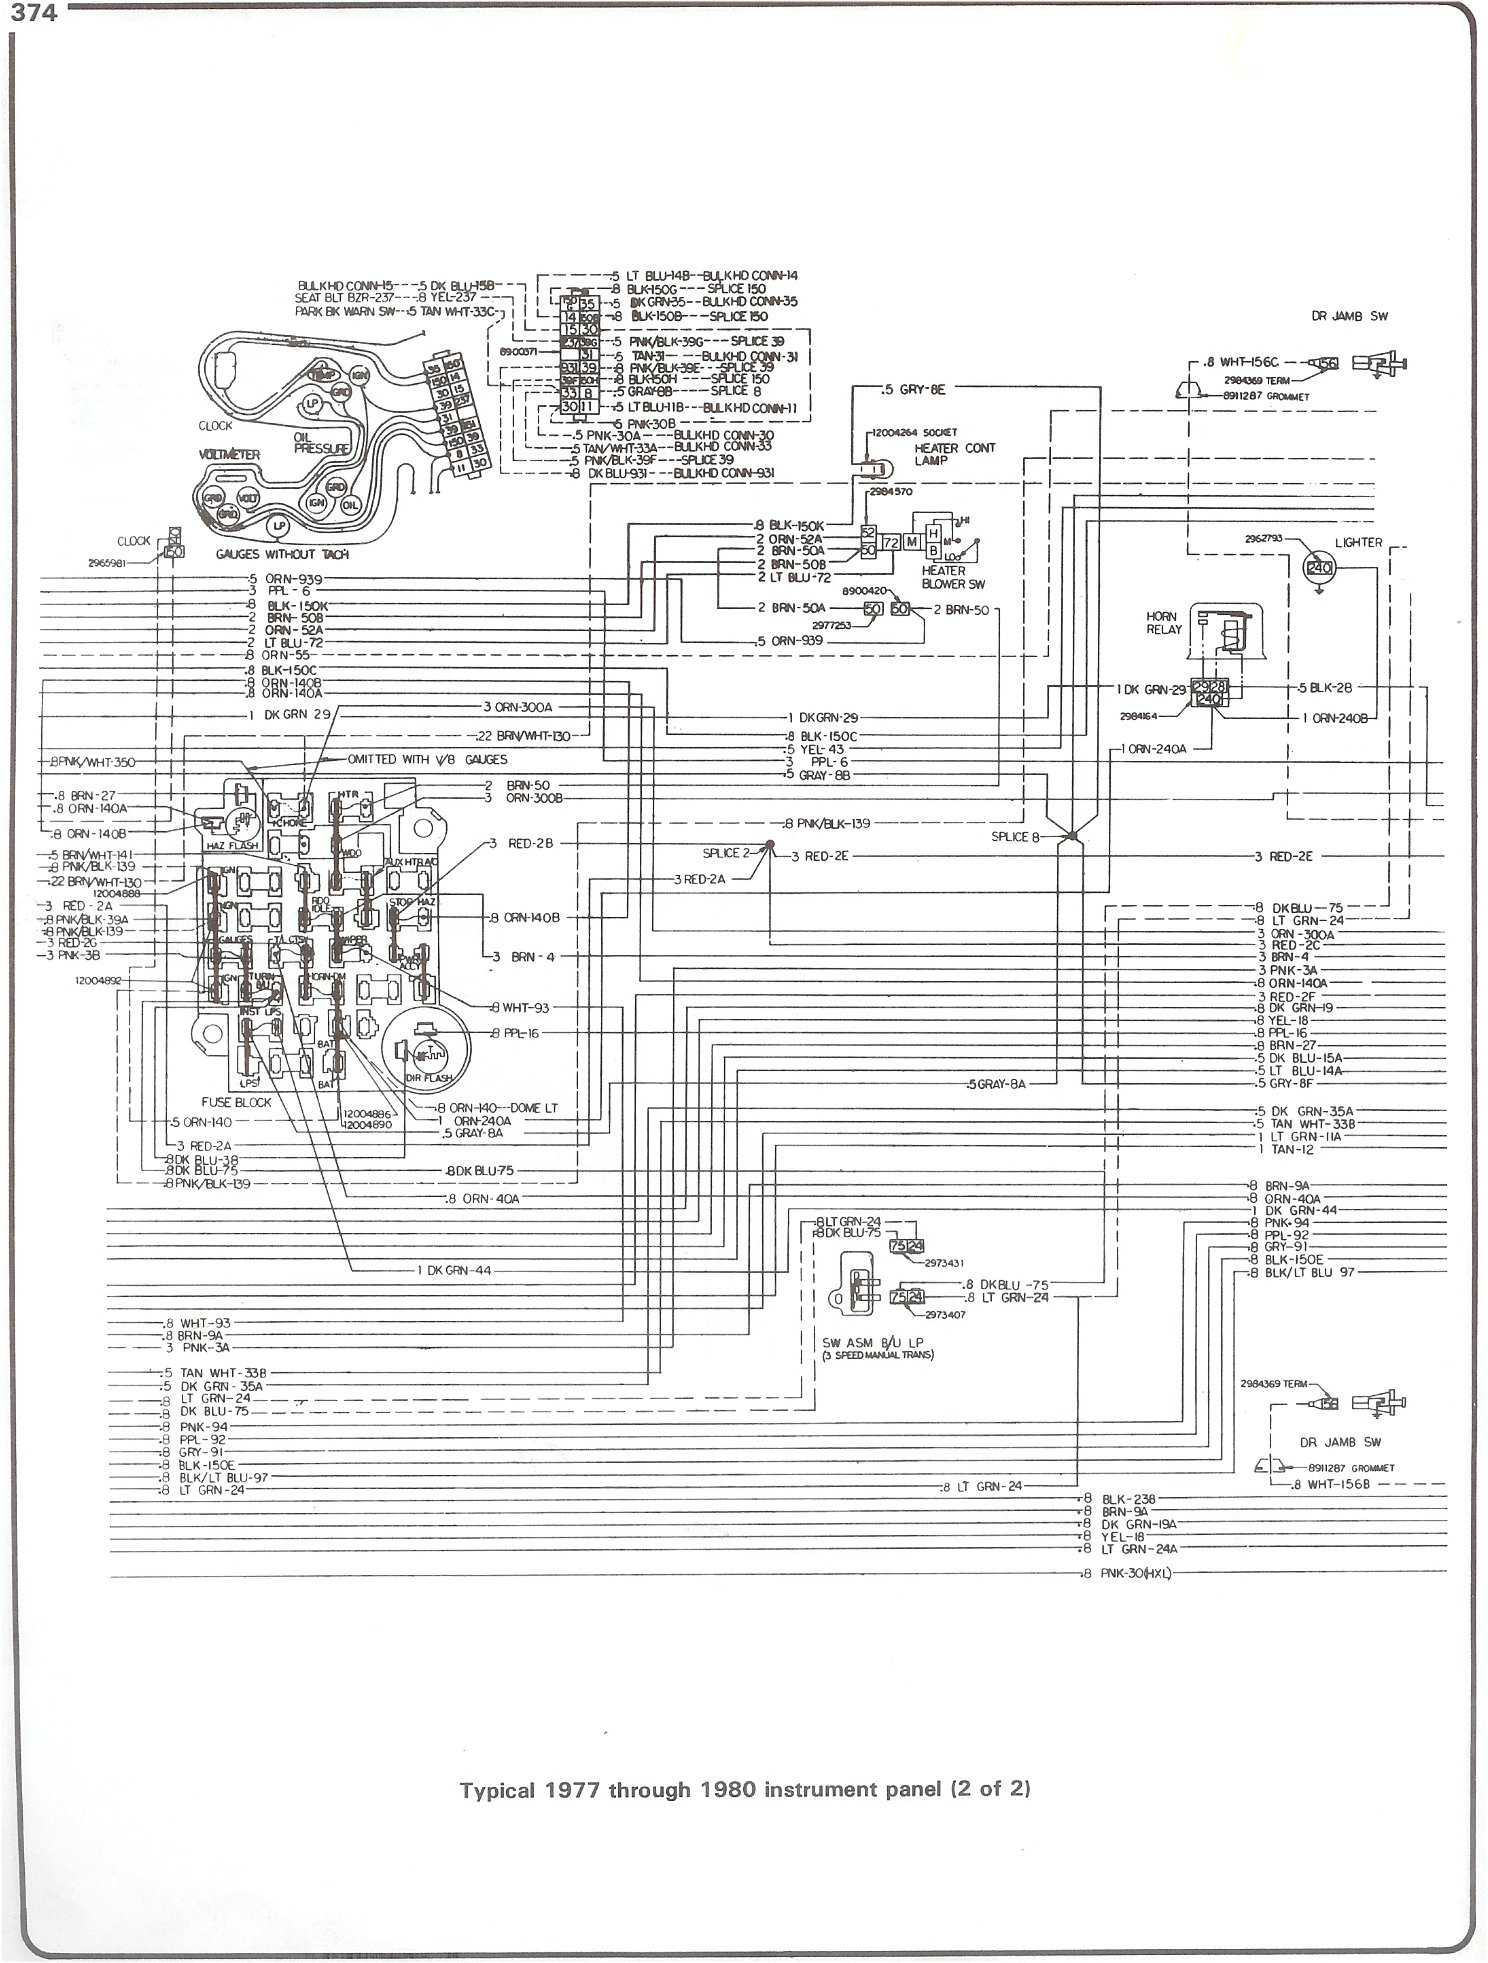 1978 chevrolet k10 wiring diagram   33 wiring diagram